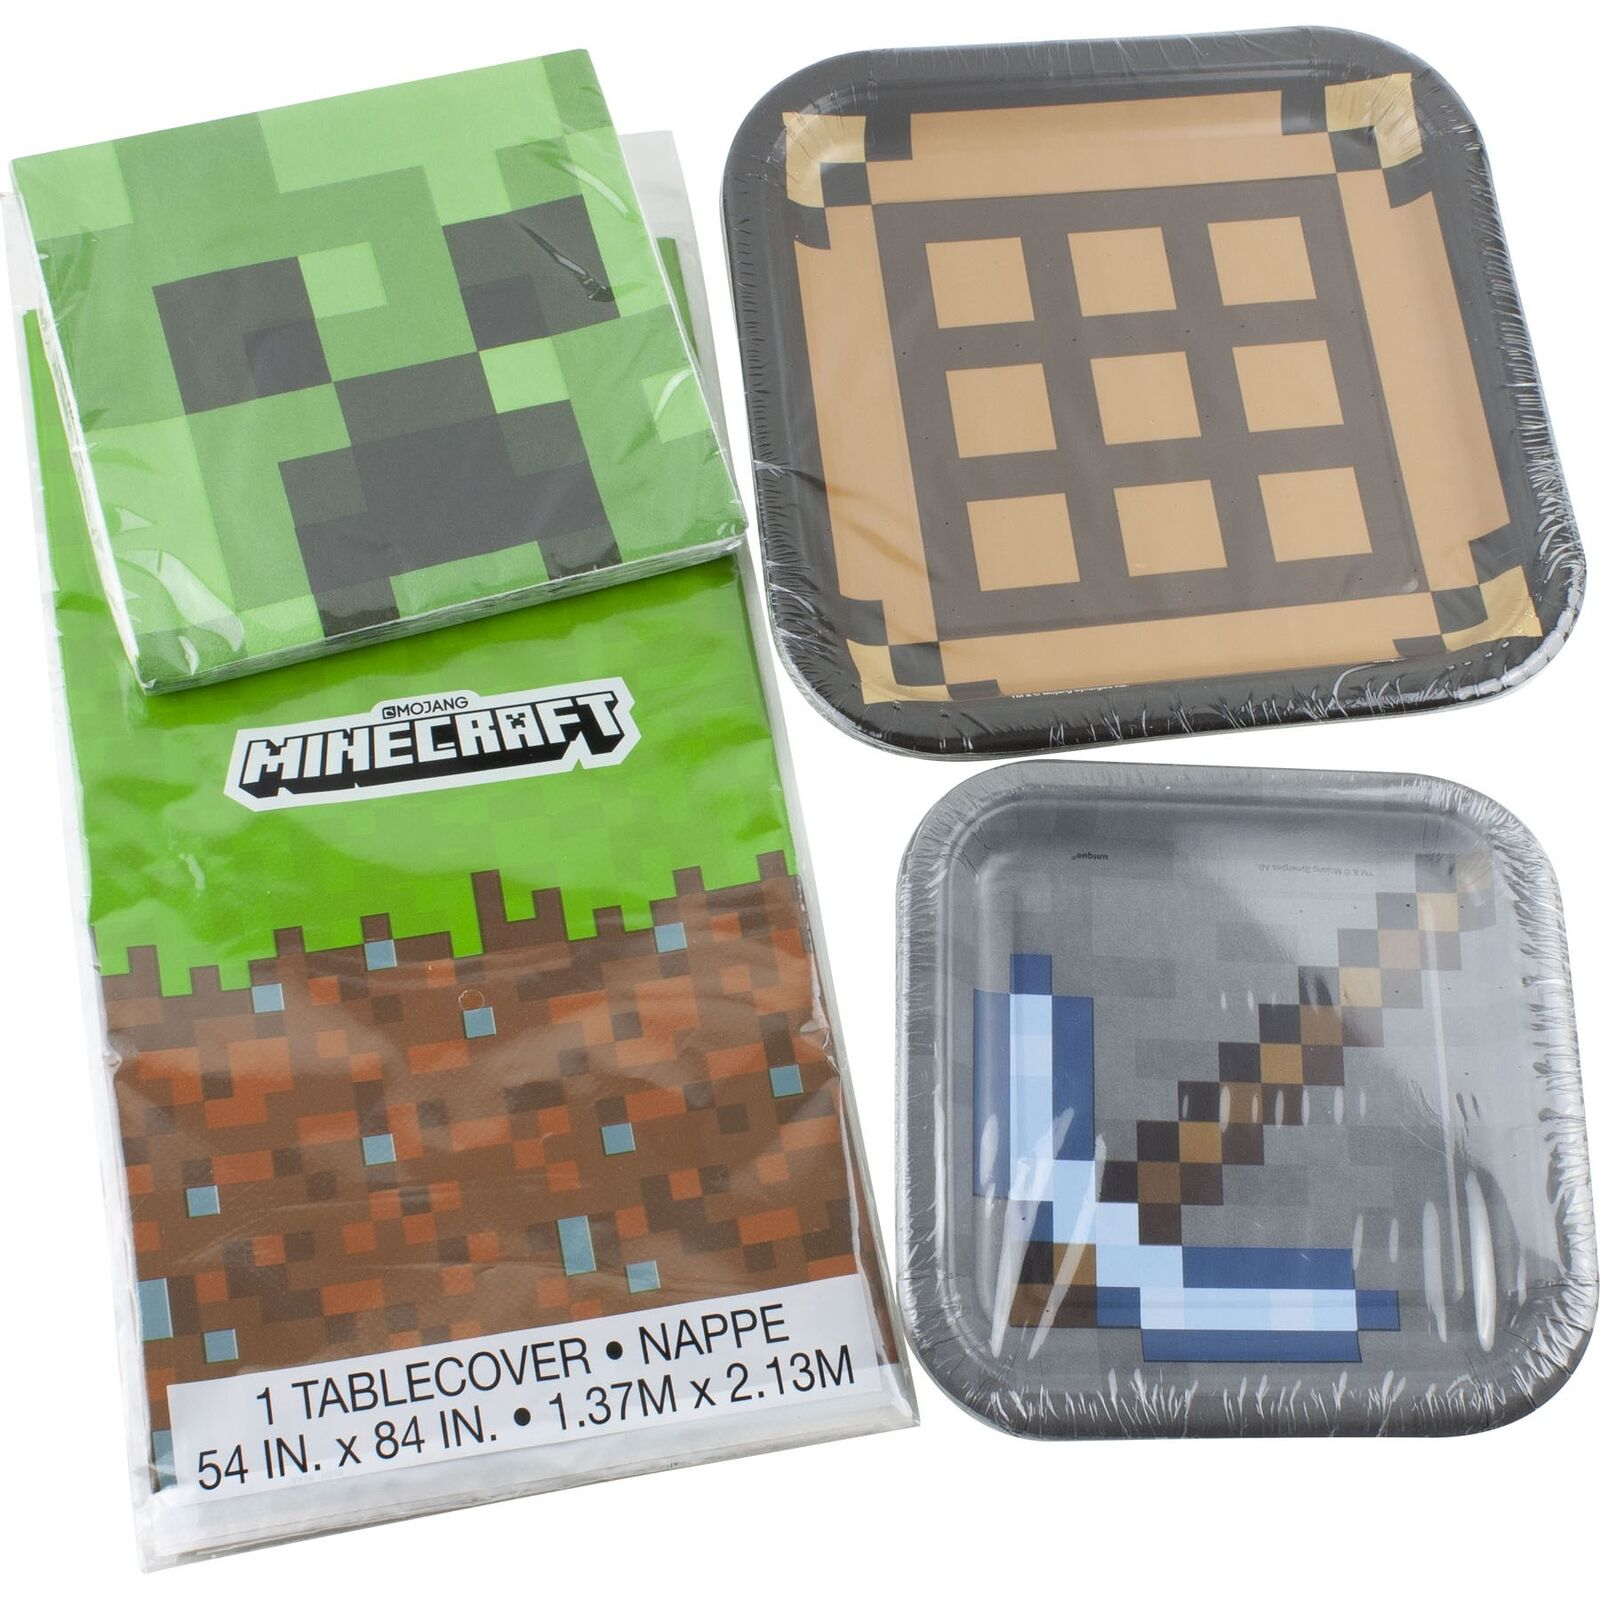 Minecraft Birthday Party Supplies 16 Plates And Napkins 1 Tablecover Axe 11179794058 Ebay